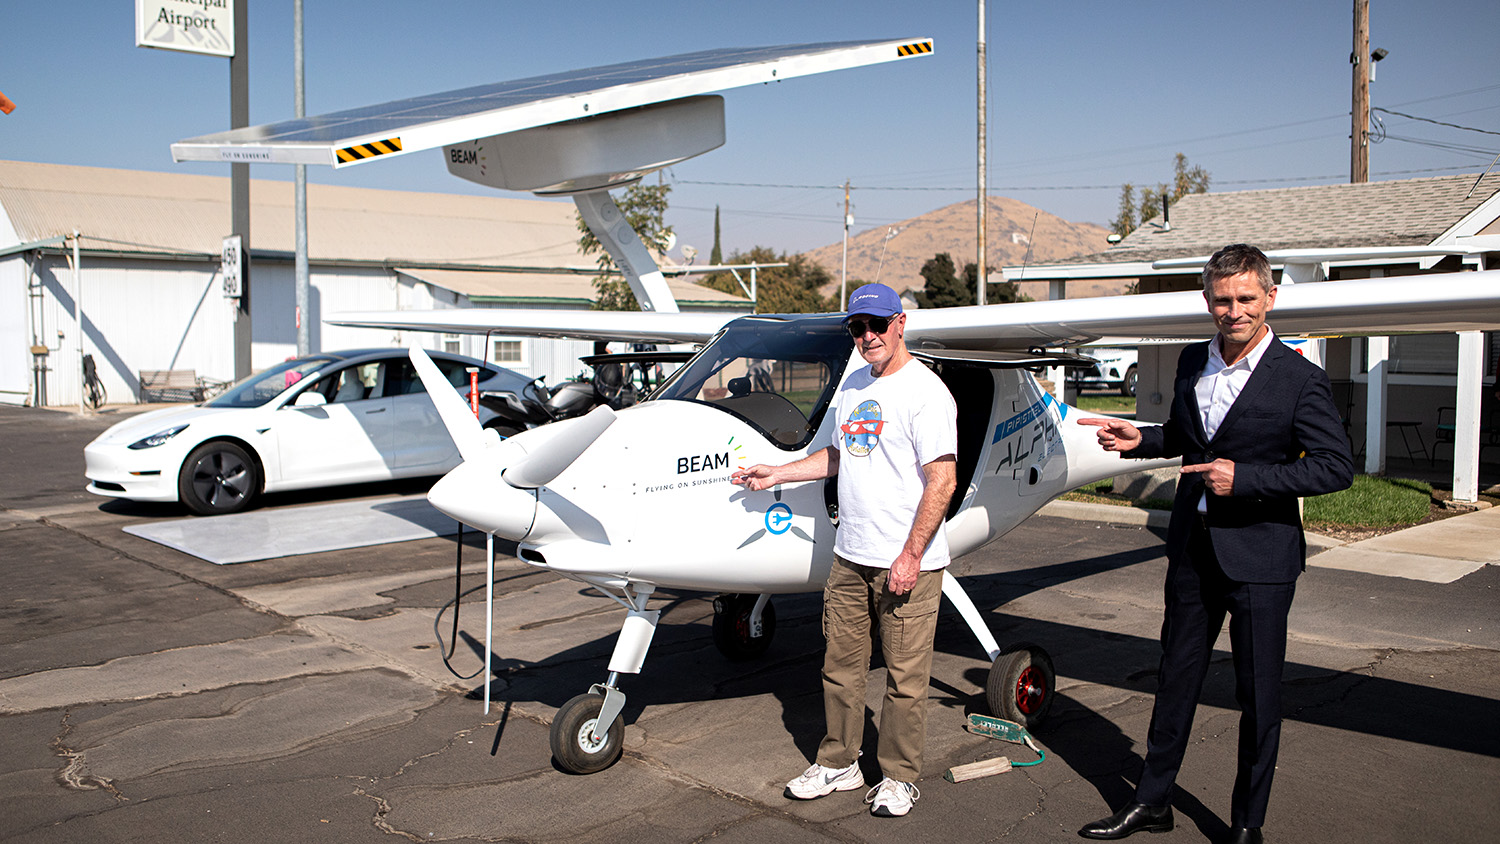 Beam-CEO and Pilot by Pipistrel-Flying on Sunshine